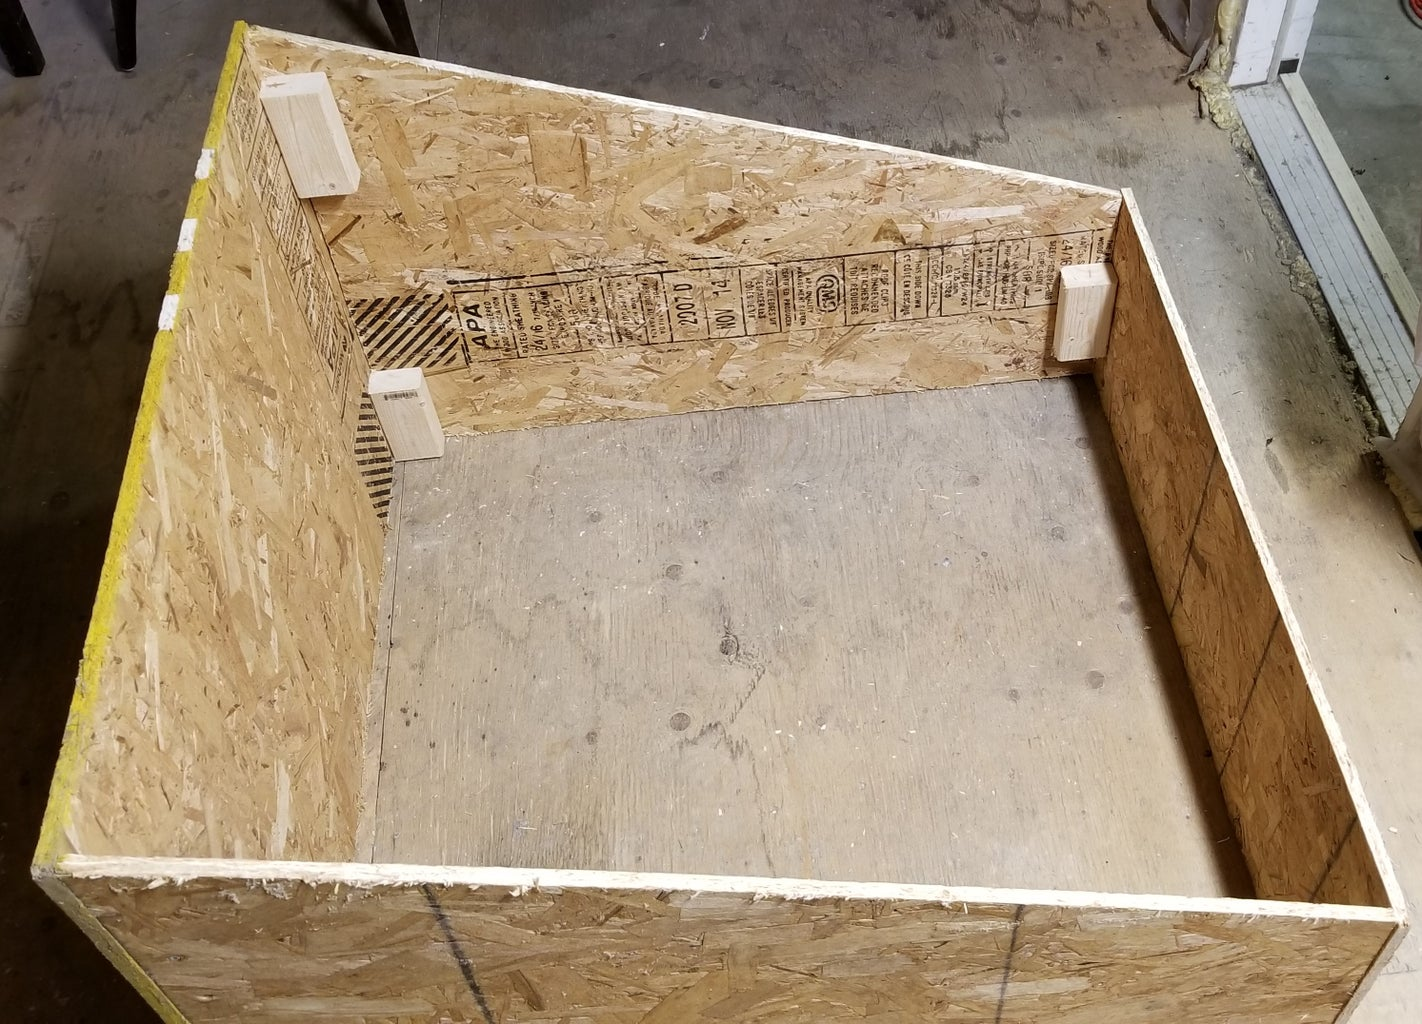 Add Some Support and Assemble the Box